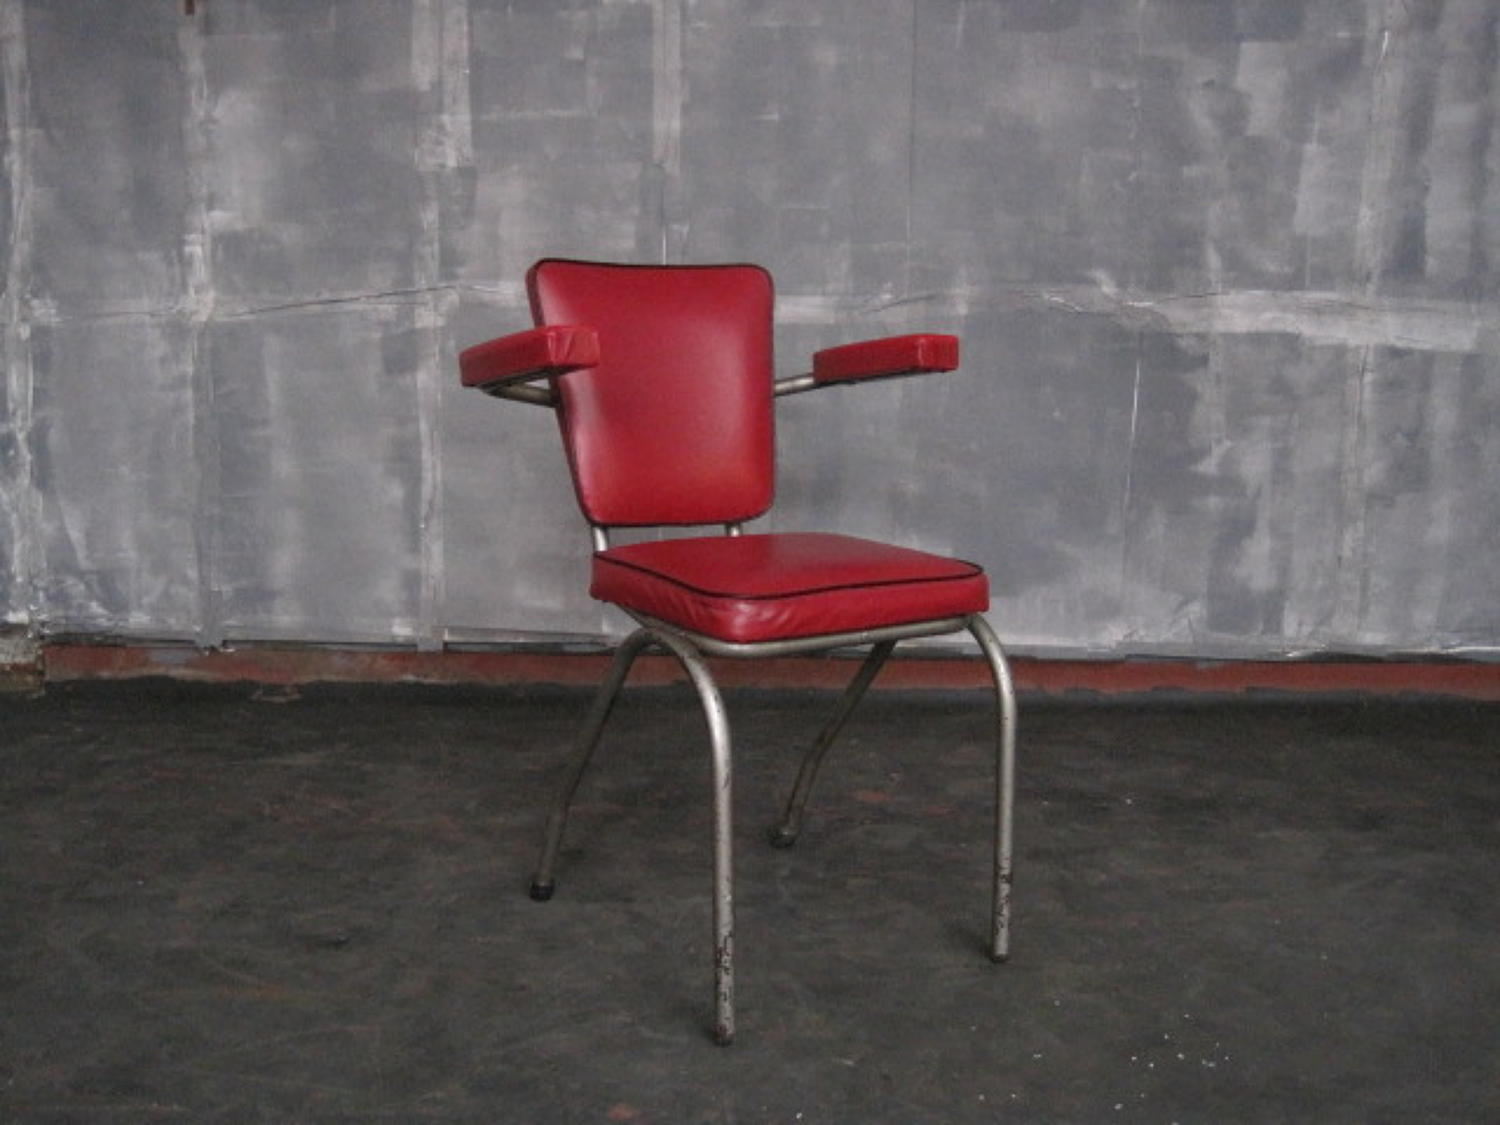 Vintage red office or desk chair